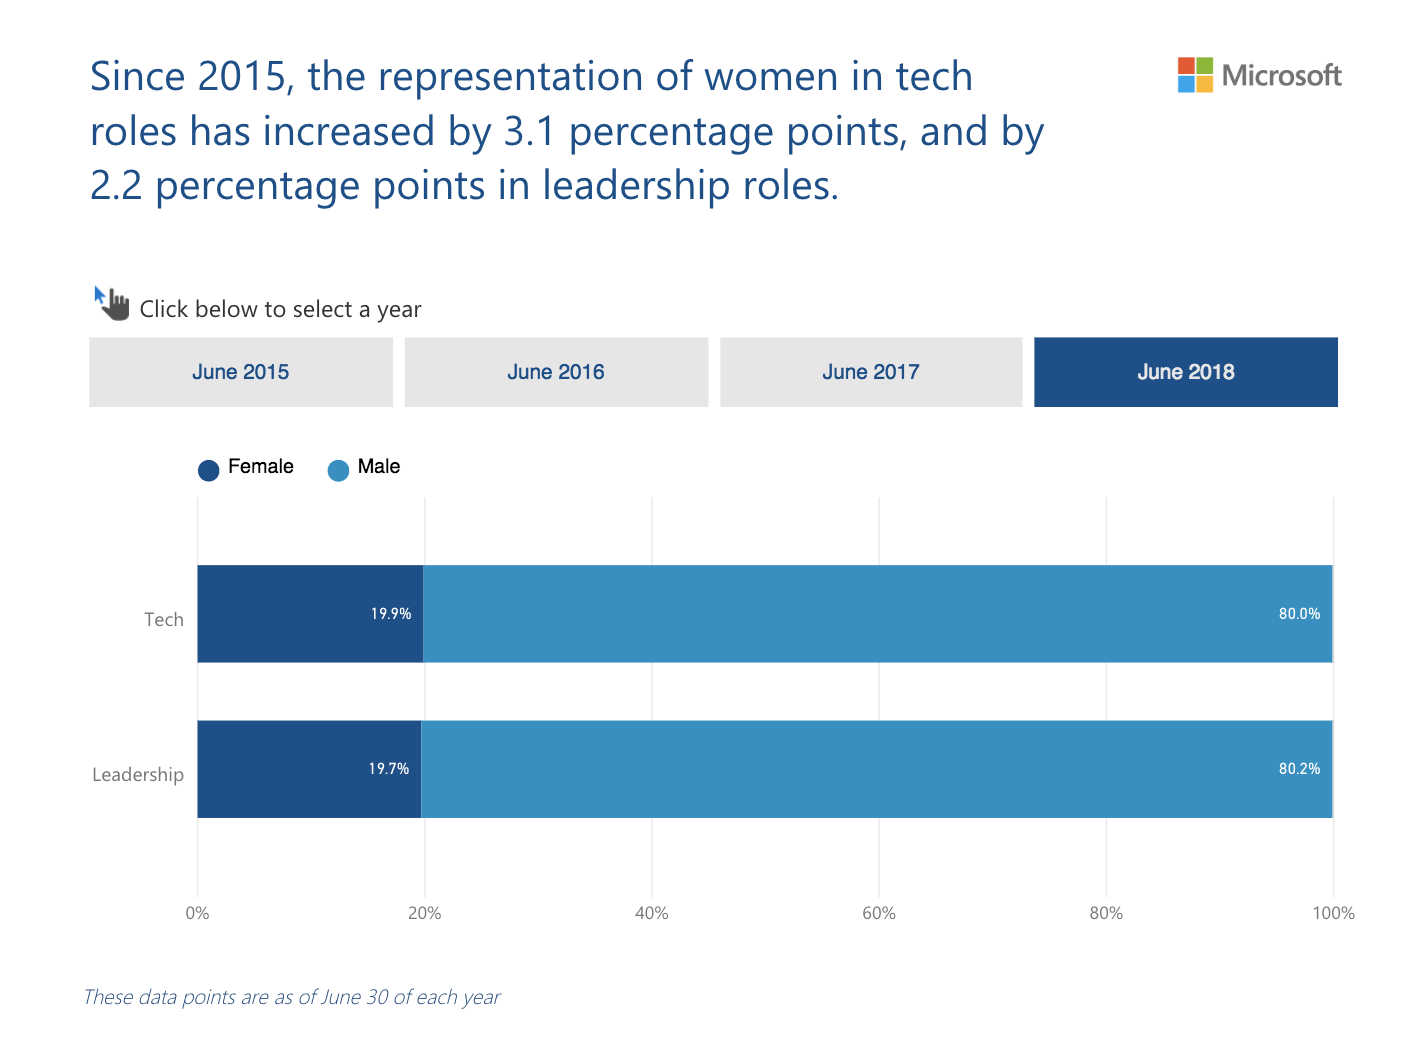 A chart of the representation of women in leadership and technical roles at Microsoft